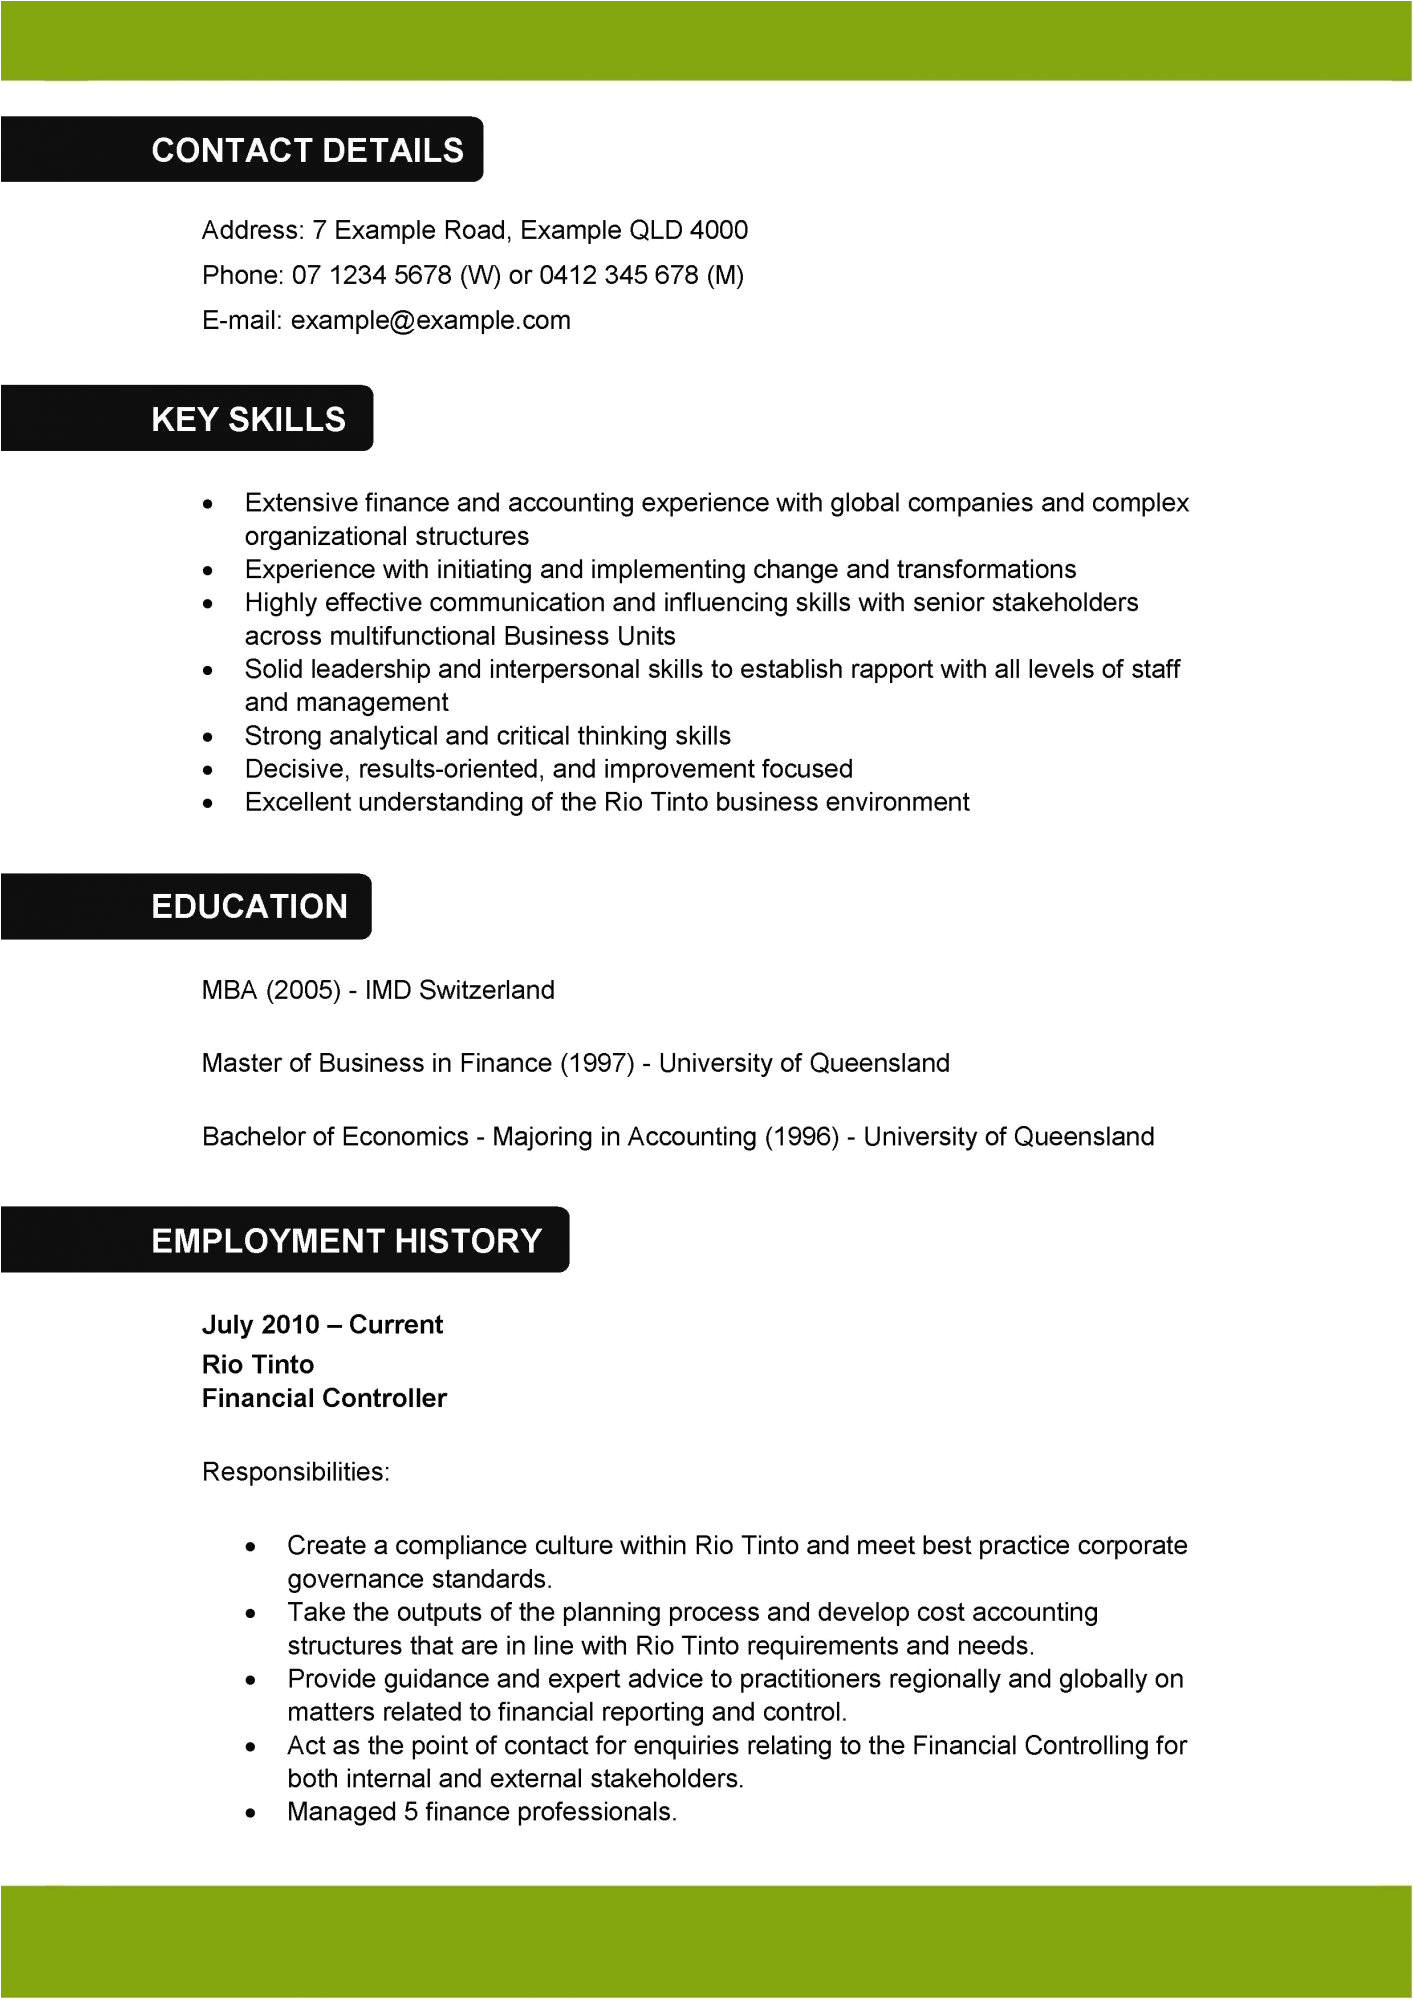 sample resume for lawn care worker awesome aged care resume sample resume sample nanny personal care